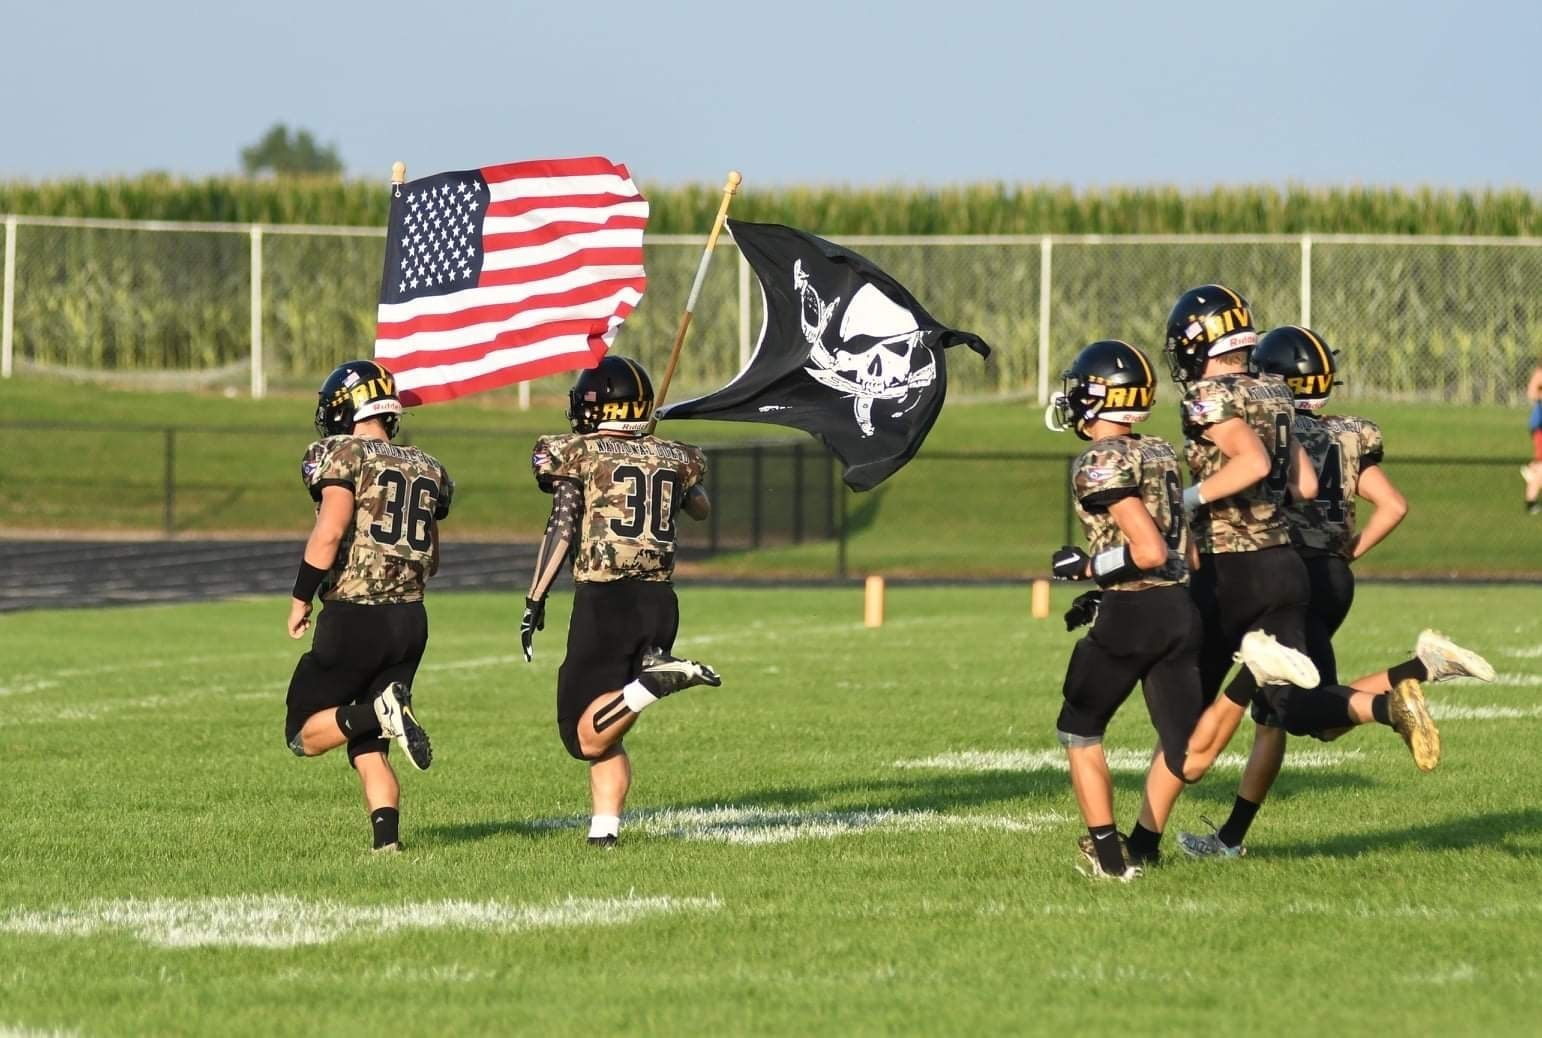 Coming onto the field